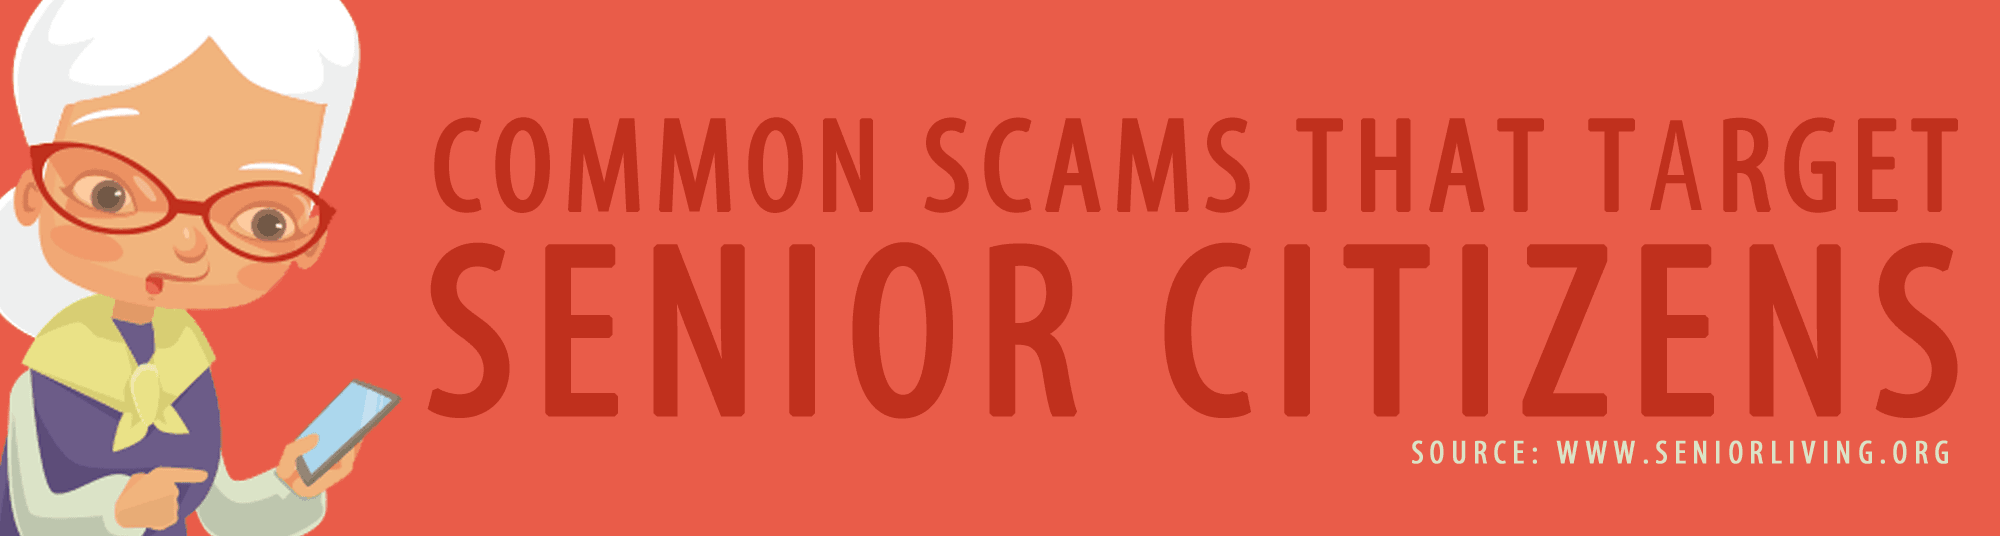 Common Scams that Target Senior Citizens